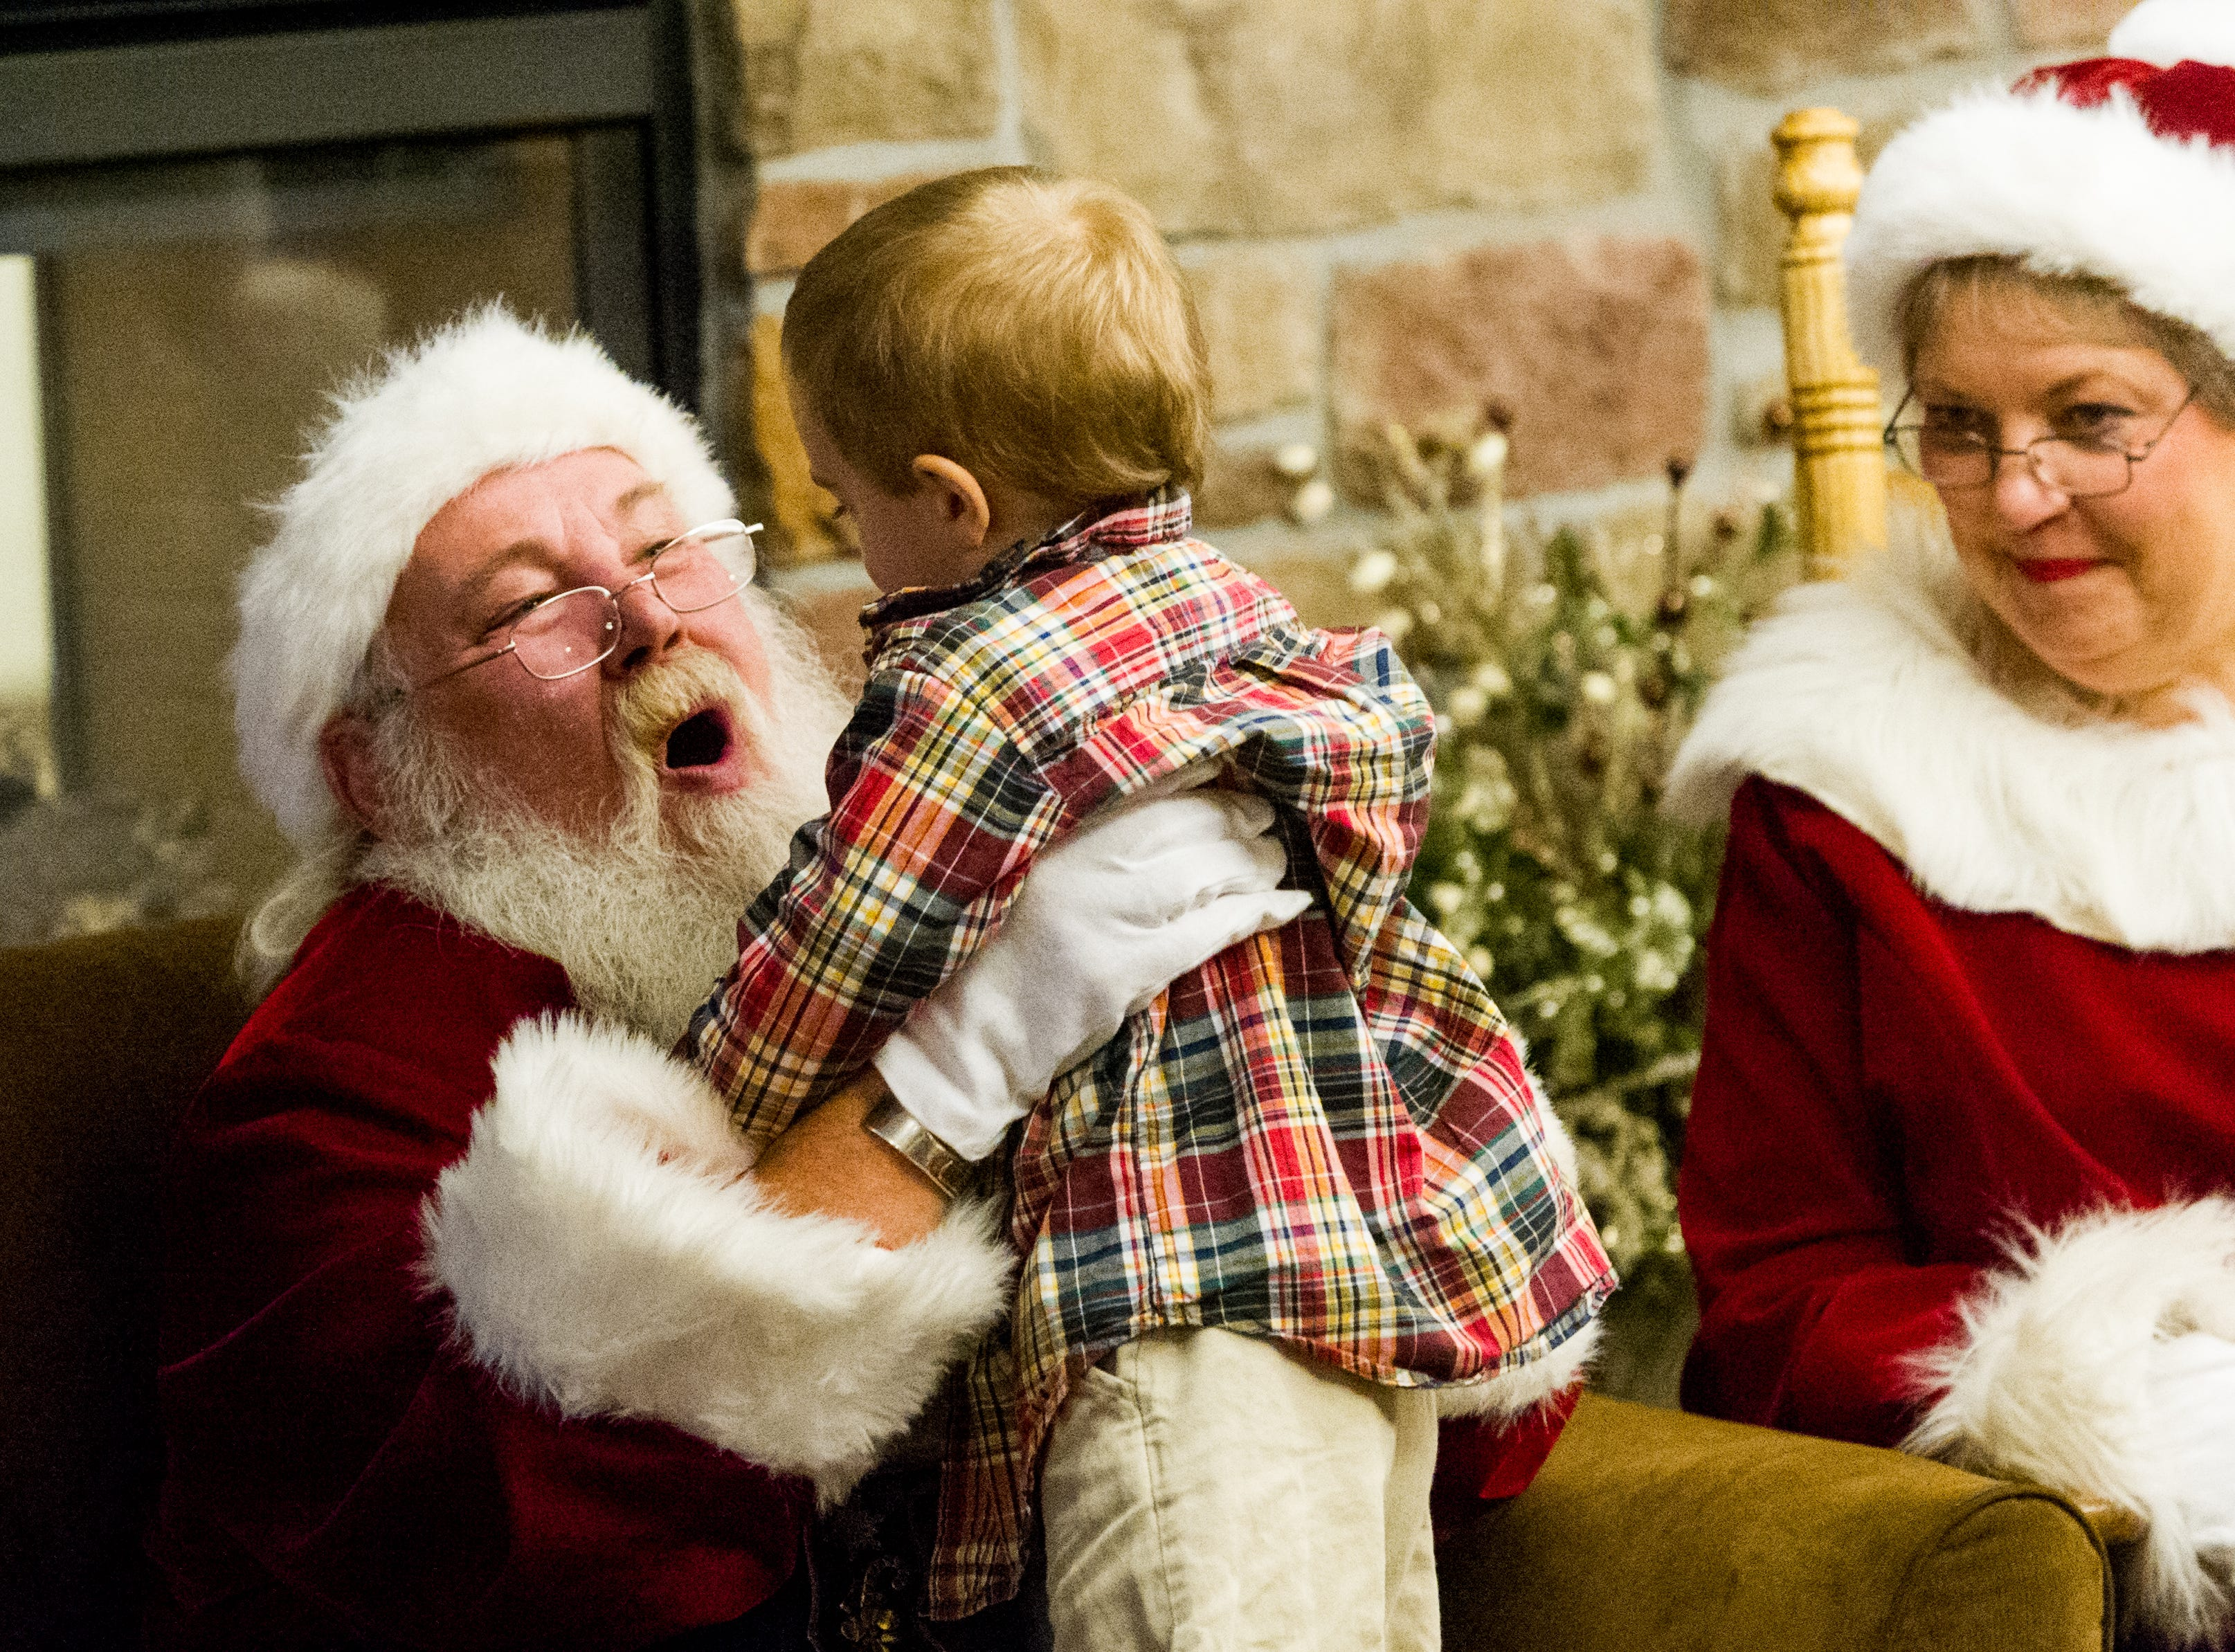 "DANIEL R. PATMORE / SPECIAL TO THE COURIER & PRESS ""Ho, ho, ho"" said Santa played by Rich Clarner as he lifts three year-old Hayden Sargent of Evansville, Indiana onto his lap as Mrs. Claus played by Linda Clarner looks on at the Ronald McDonald House Sunday Nov. 30, 2014 in Evansville, Indiana. Three years ago Hayden Sargent was in the NICU and his family stayed at the Ronald McDonald House."